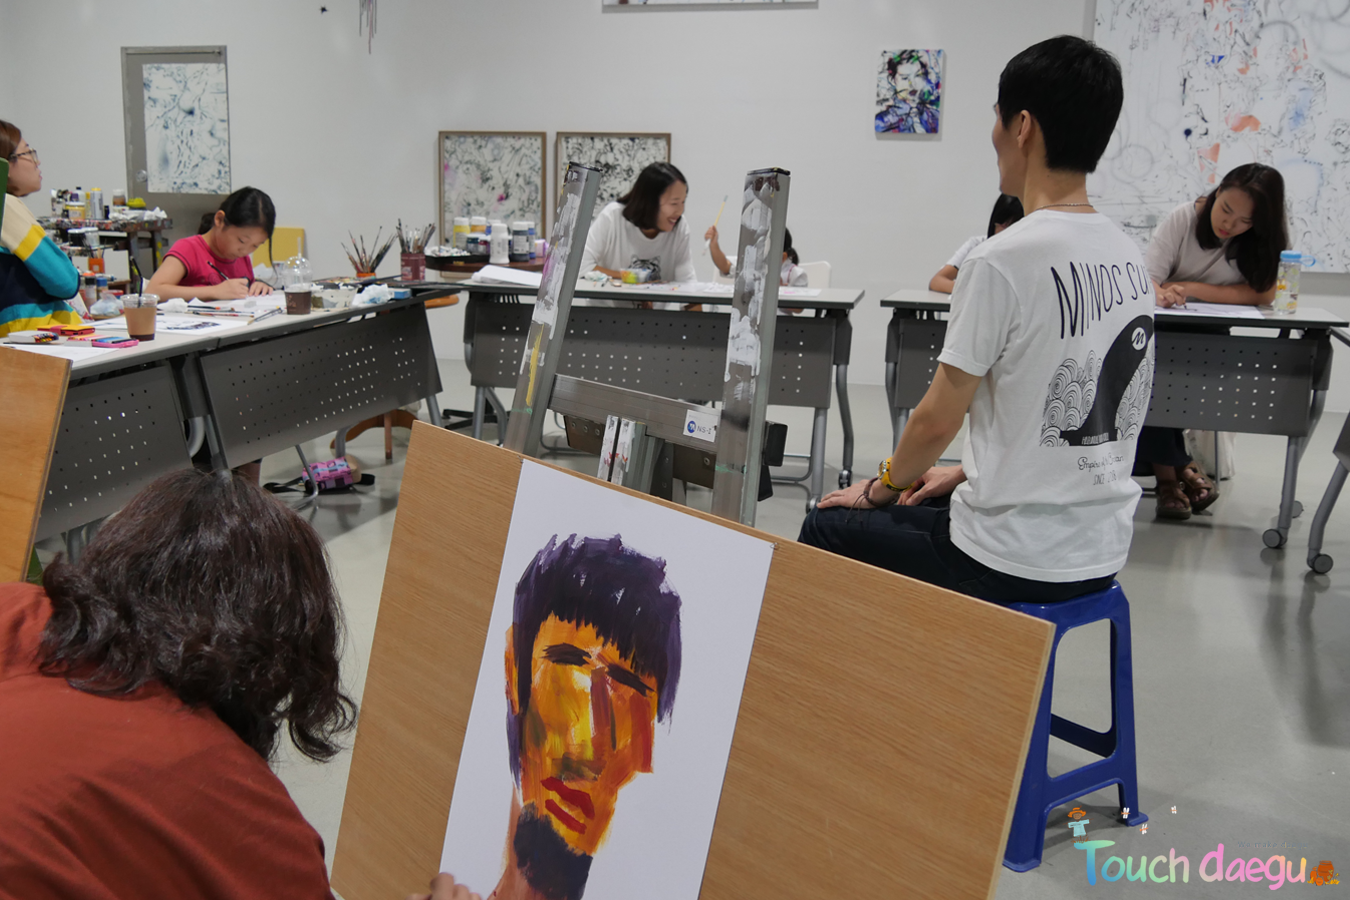 People are draqing a men in Daegu Art Factory